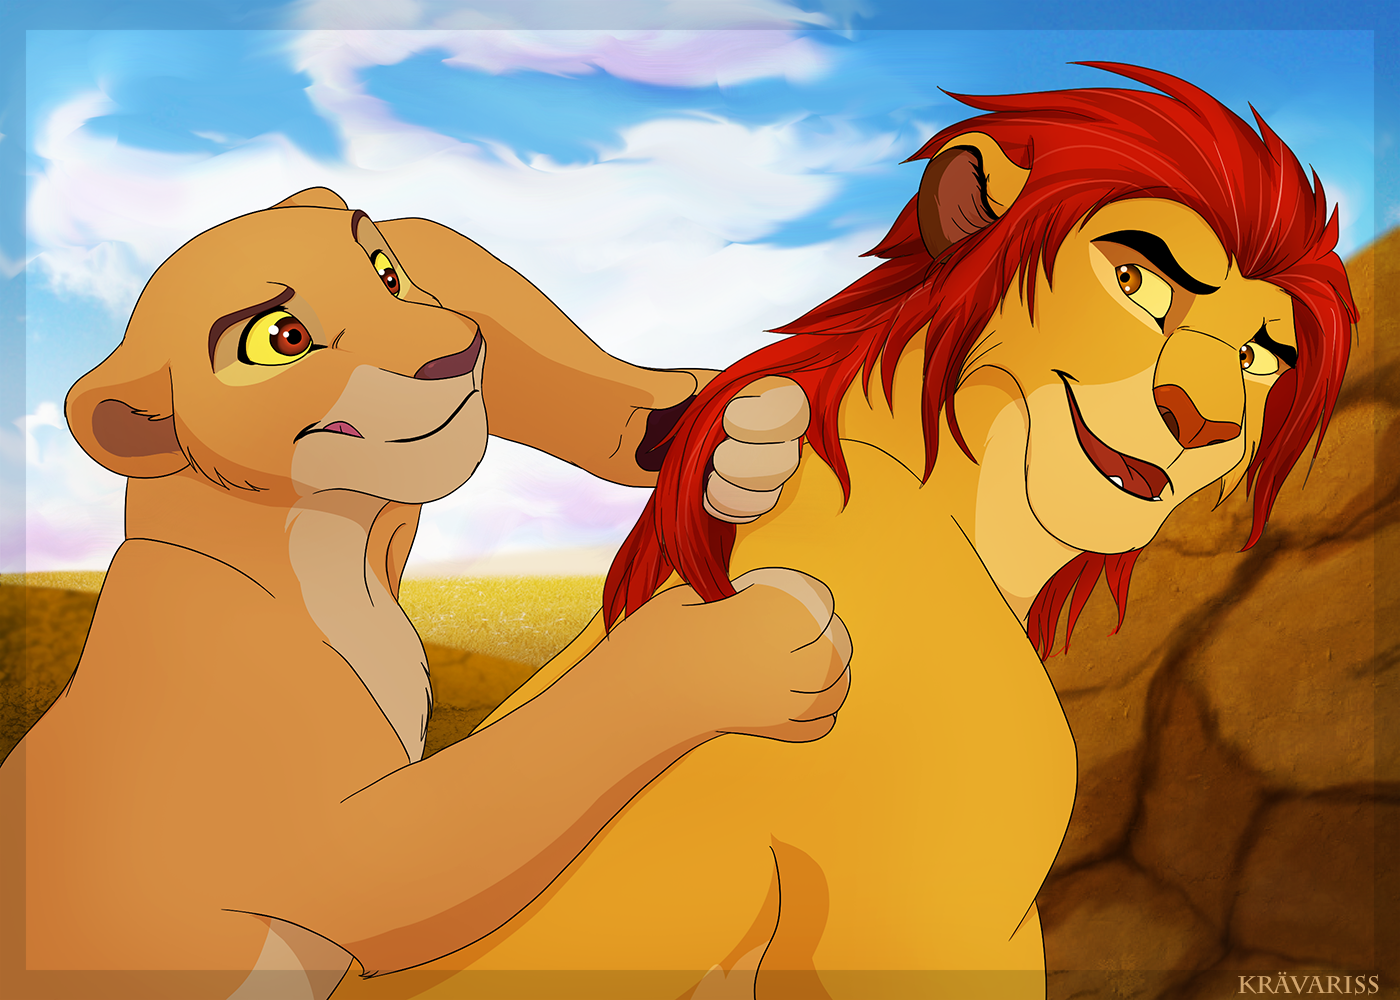 playing_with_brother_s_mane_by_kravalioness-dcadbwl.png